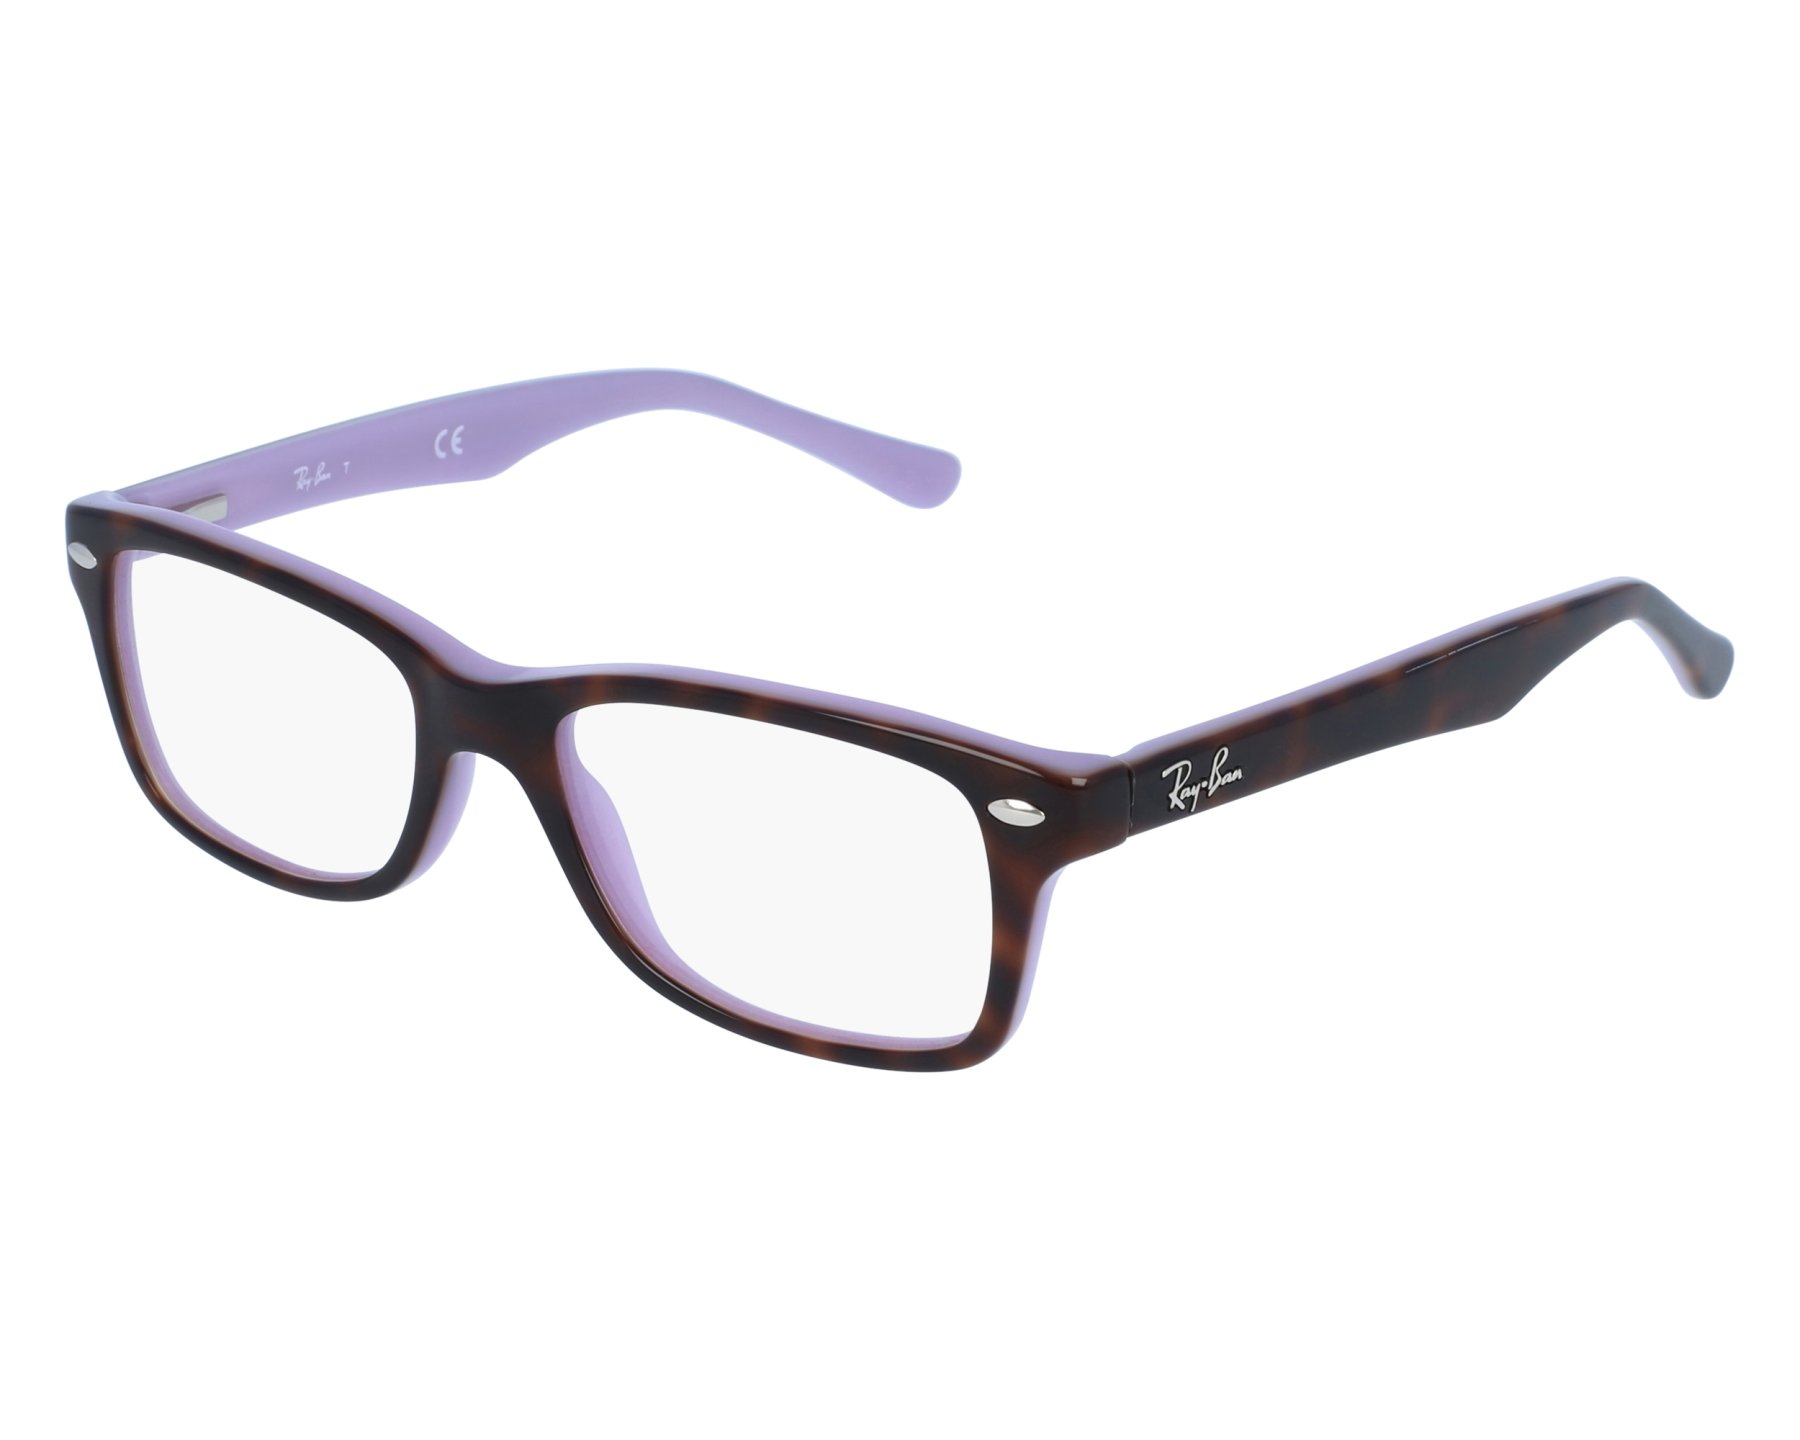 002228d595a2ca eyeglasses Ray-Ban RY-1531 3700 48-16 Tortoise Purple front view